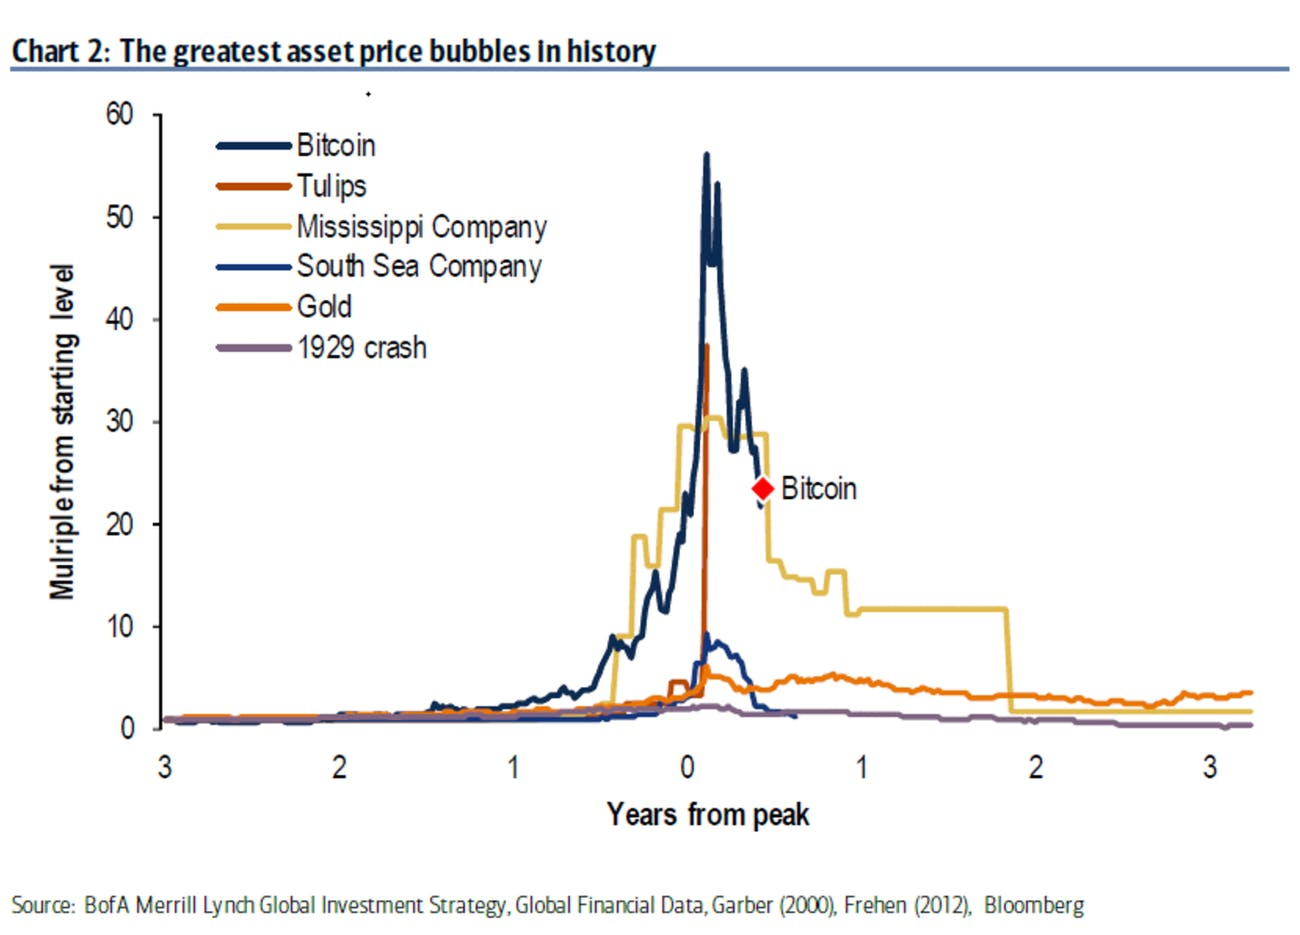 The Greatest Et Price Bubbles In History